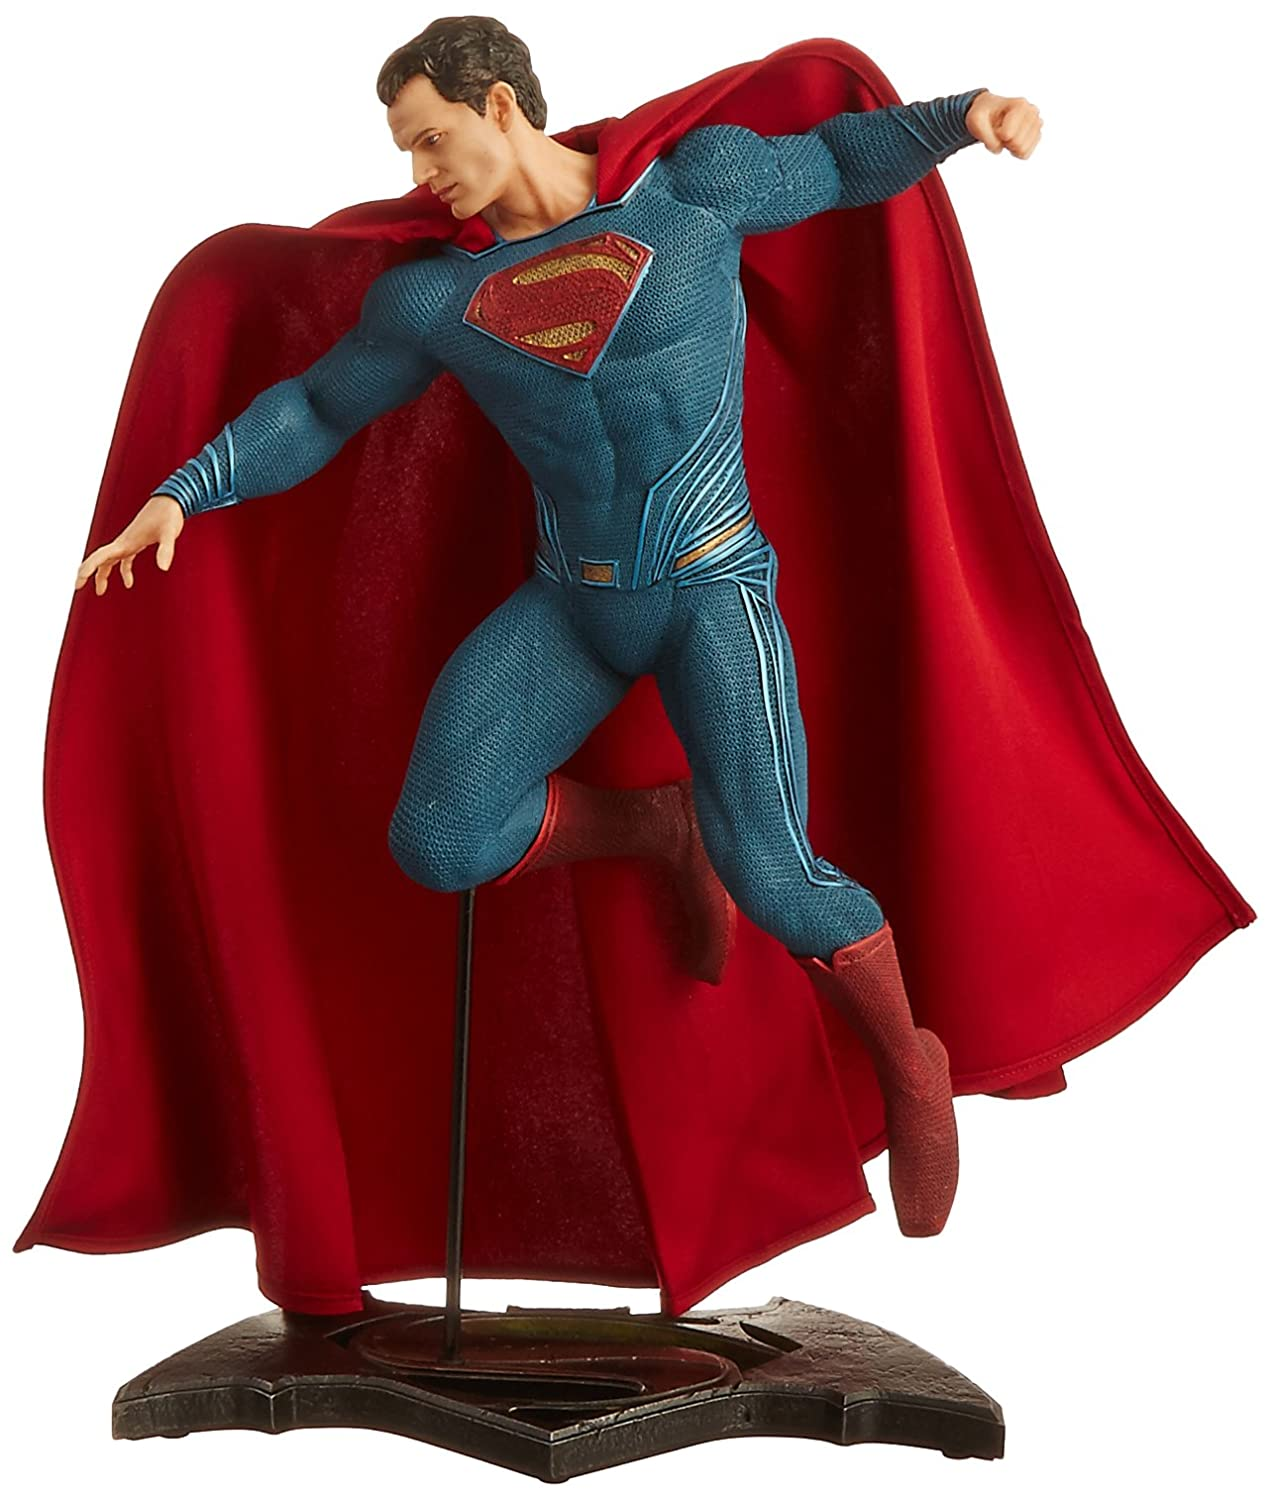 DC Comics aug150304 Batman V Superman Dawn of Justice Superman Statue